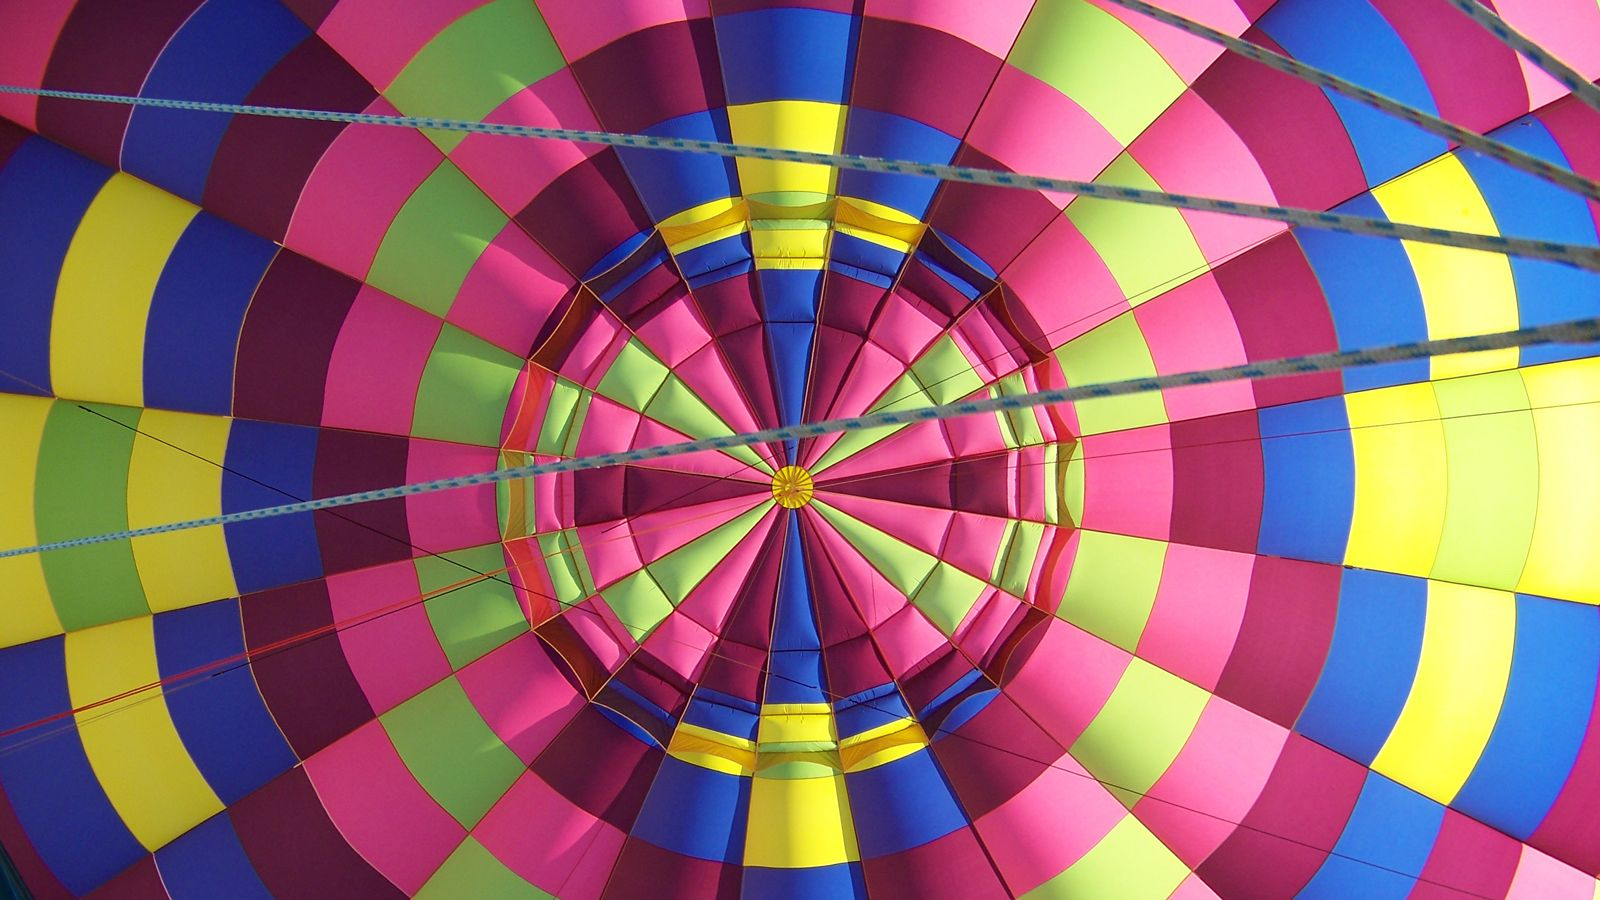 colorful fabric of a hot air balloon in St. Louis